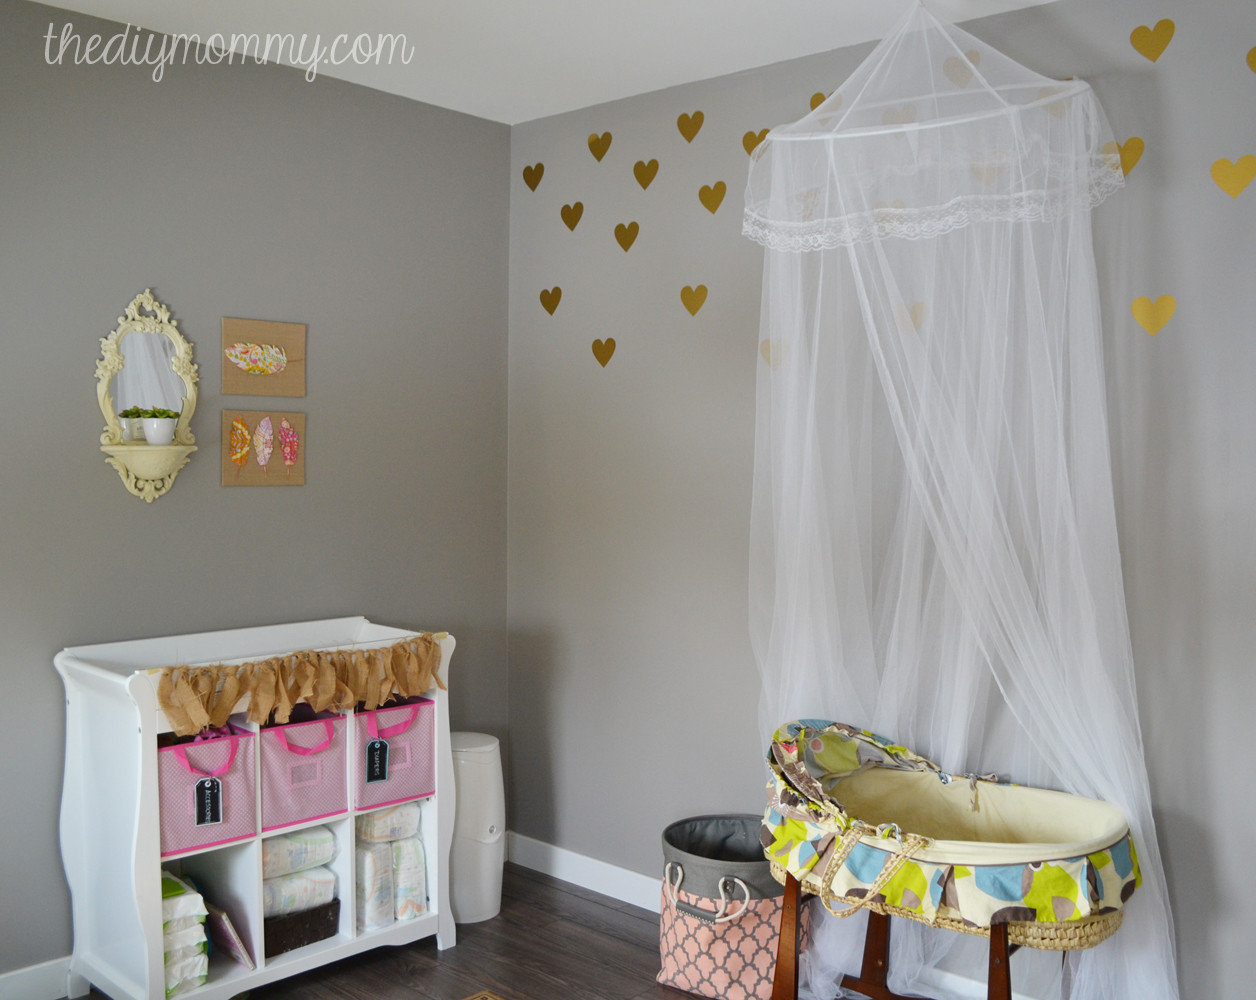 Best ideas about DIY Baby Nursery . Save or Pin Baby B's Soft Boho Nursery Now.